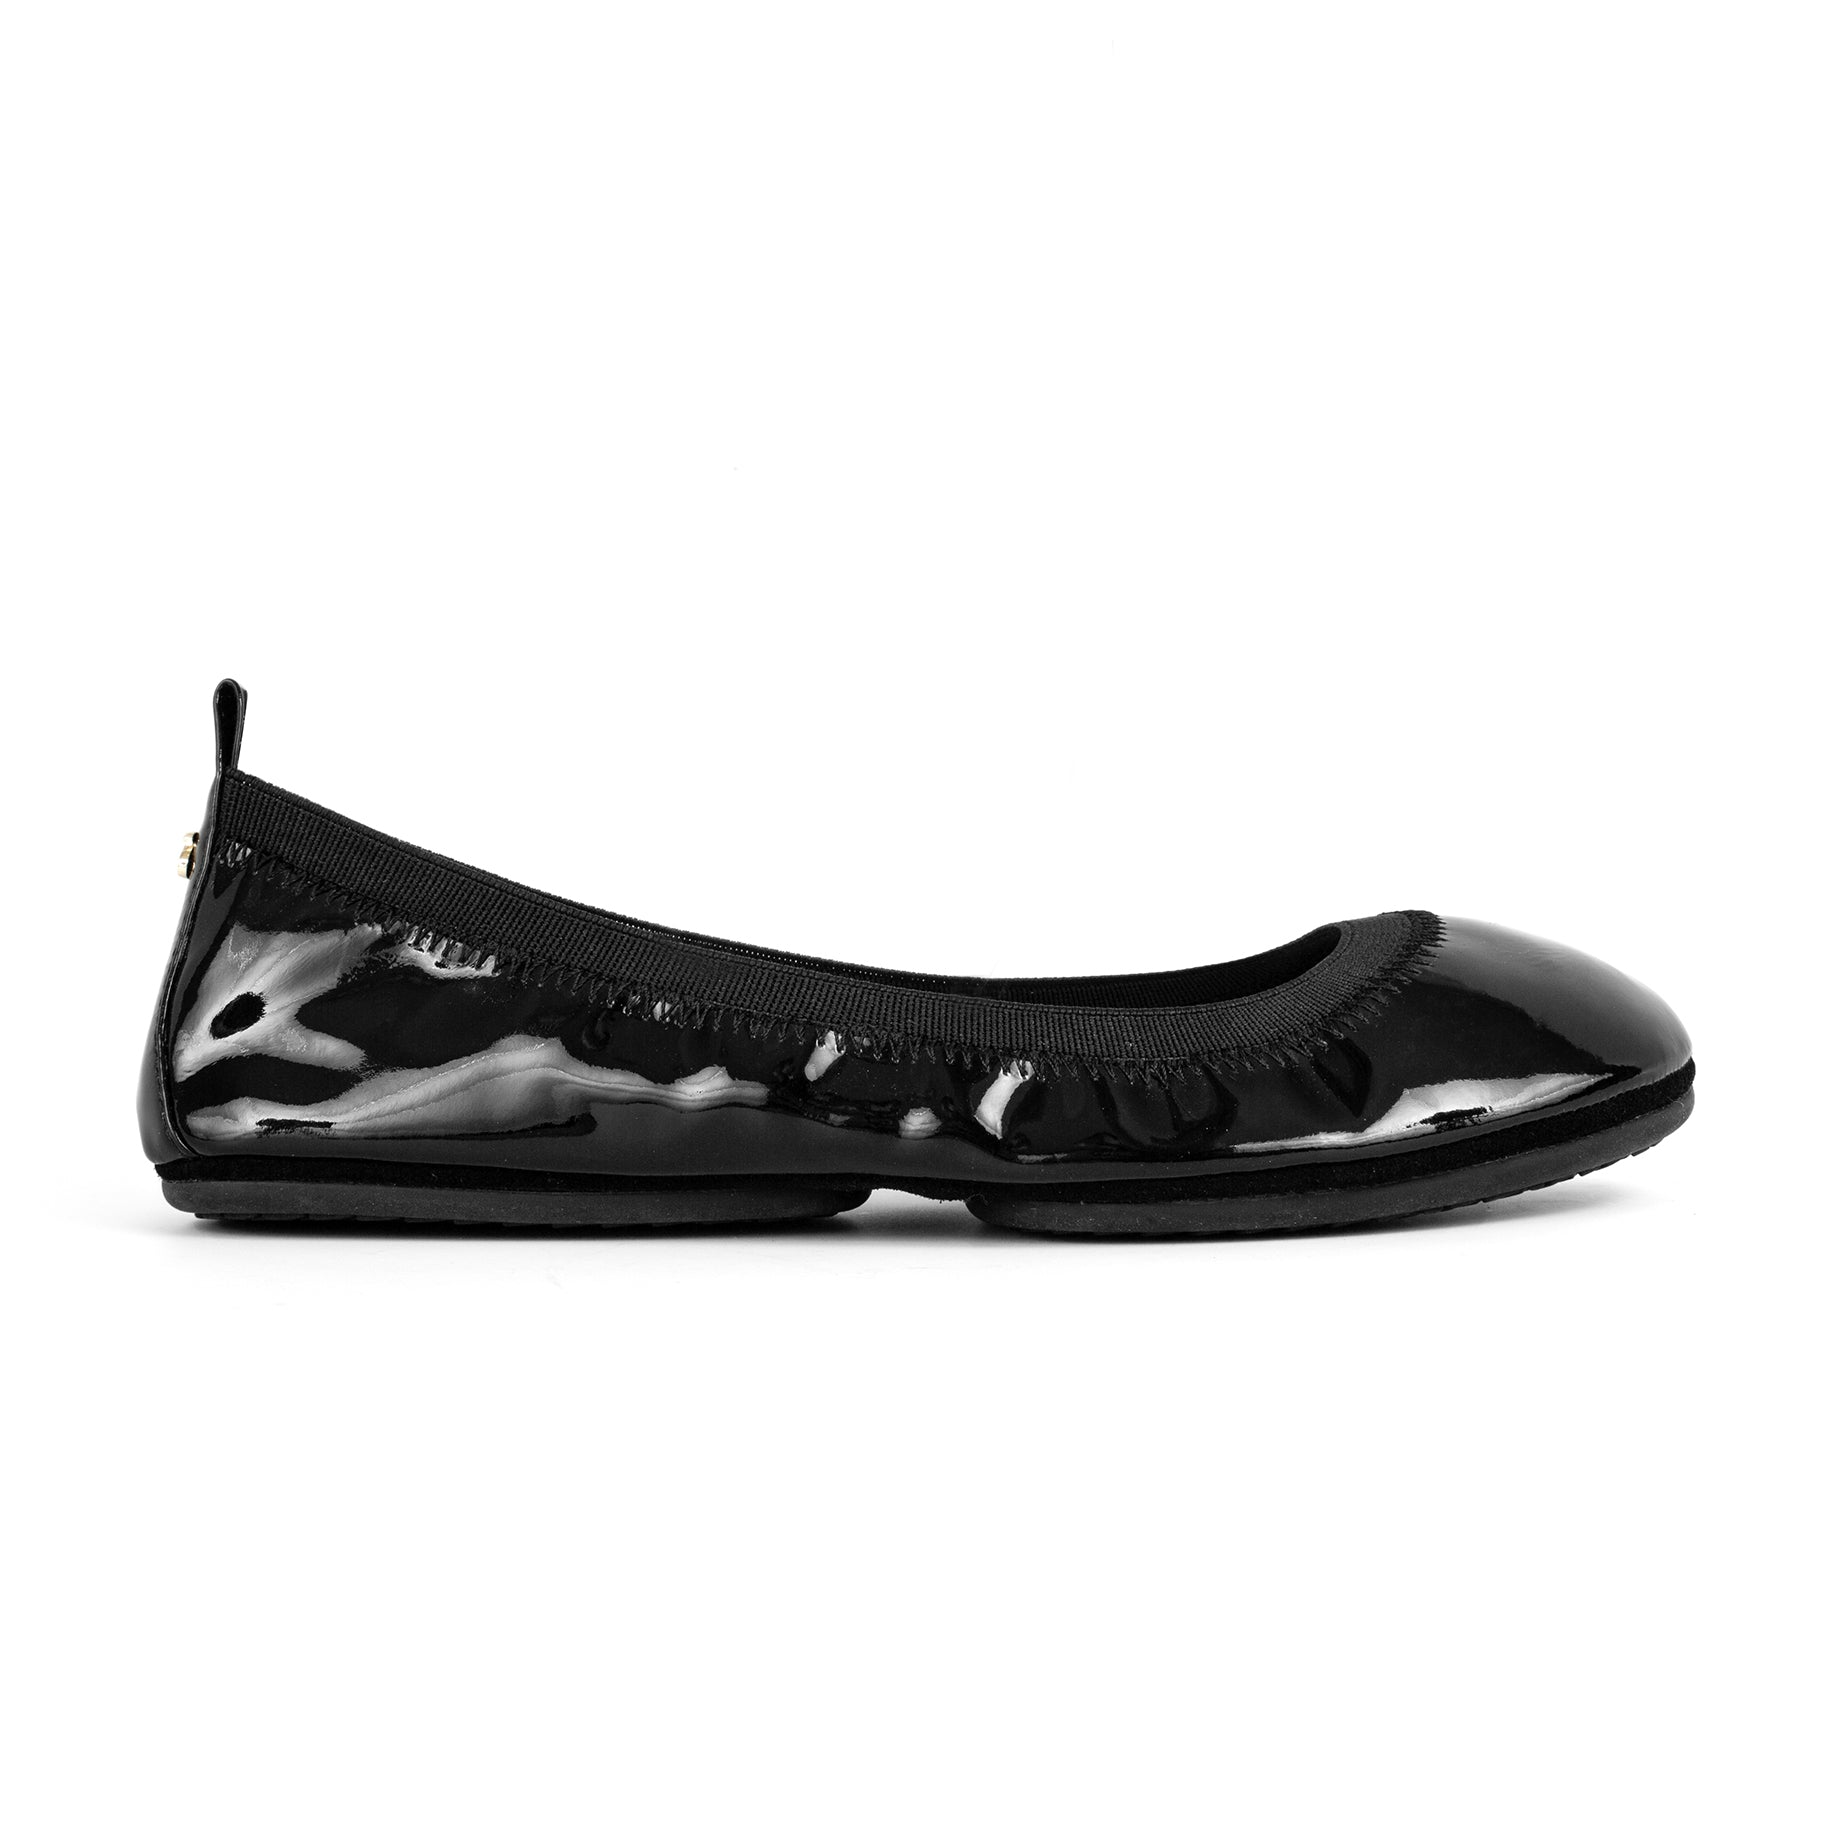 yosi samra black patent leather ballet flat foldable